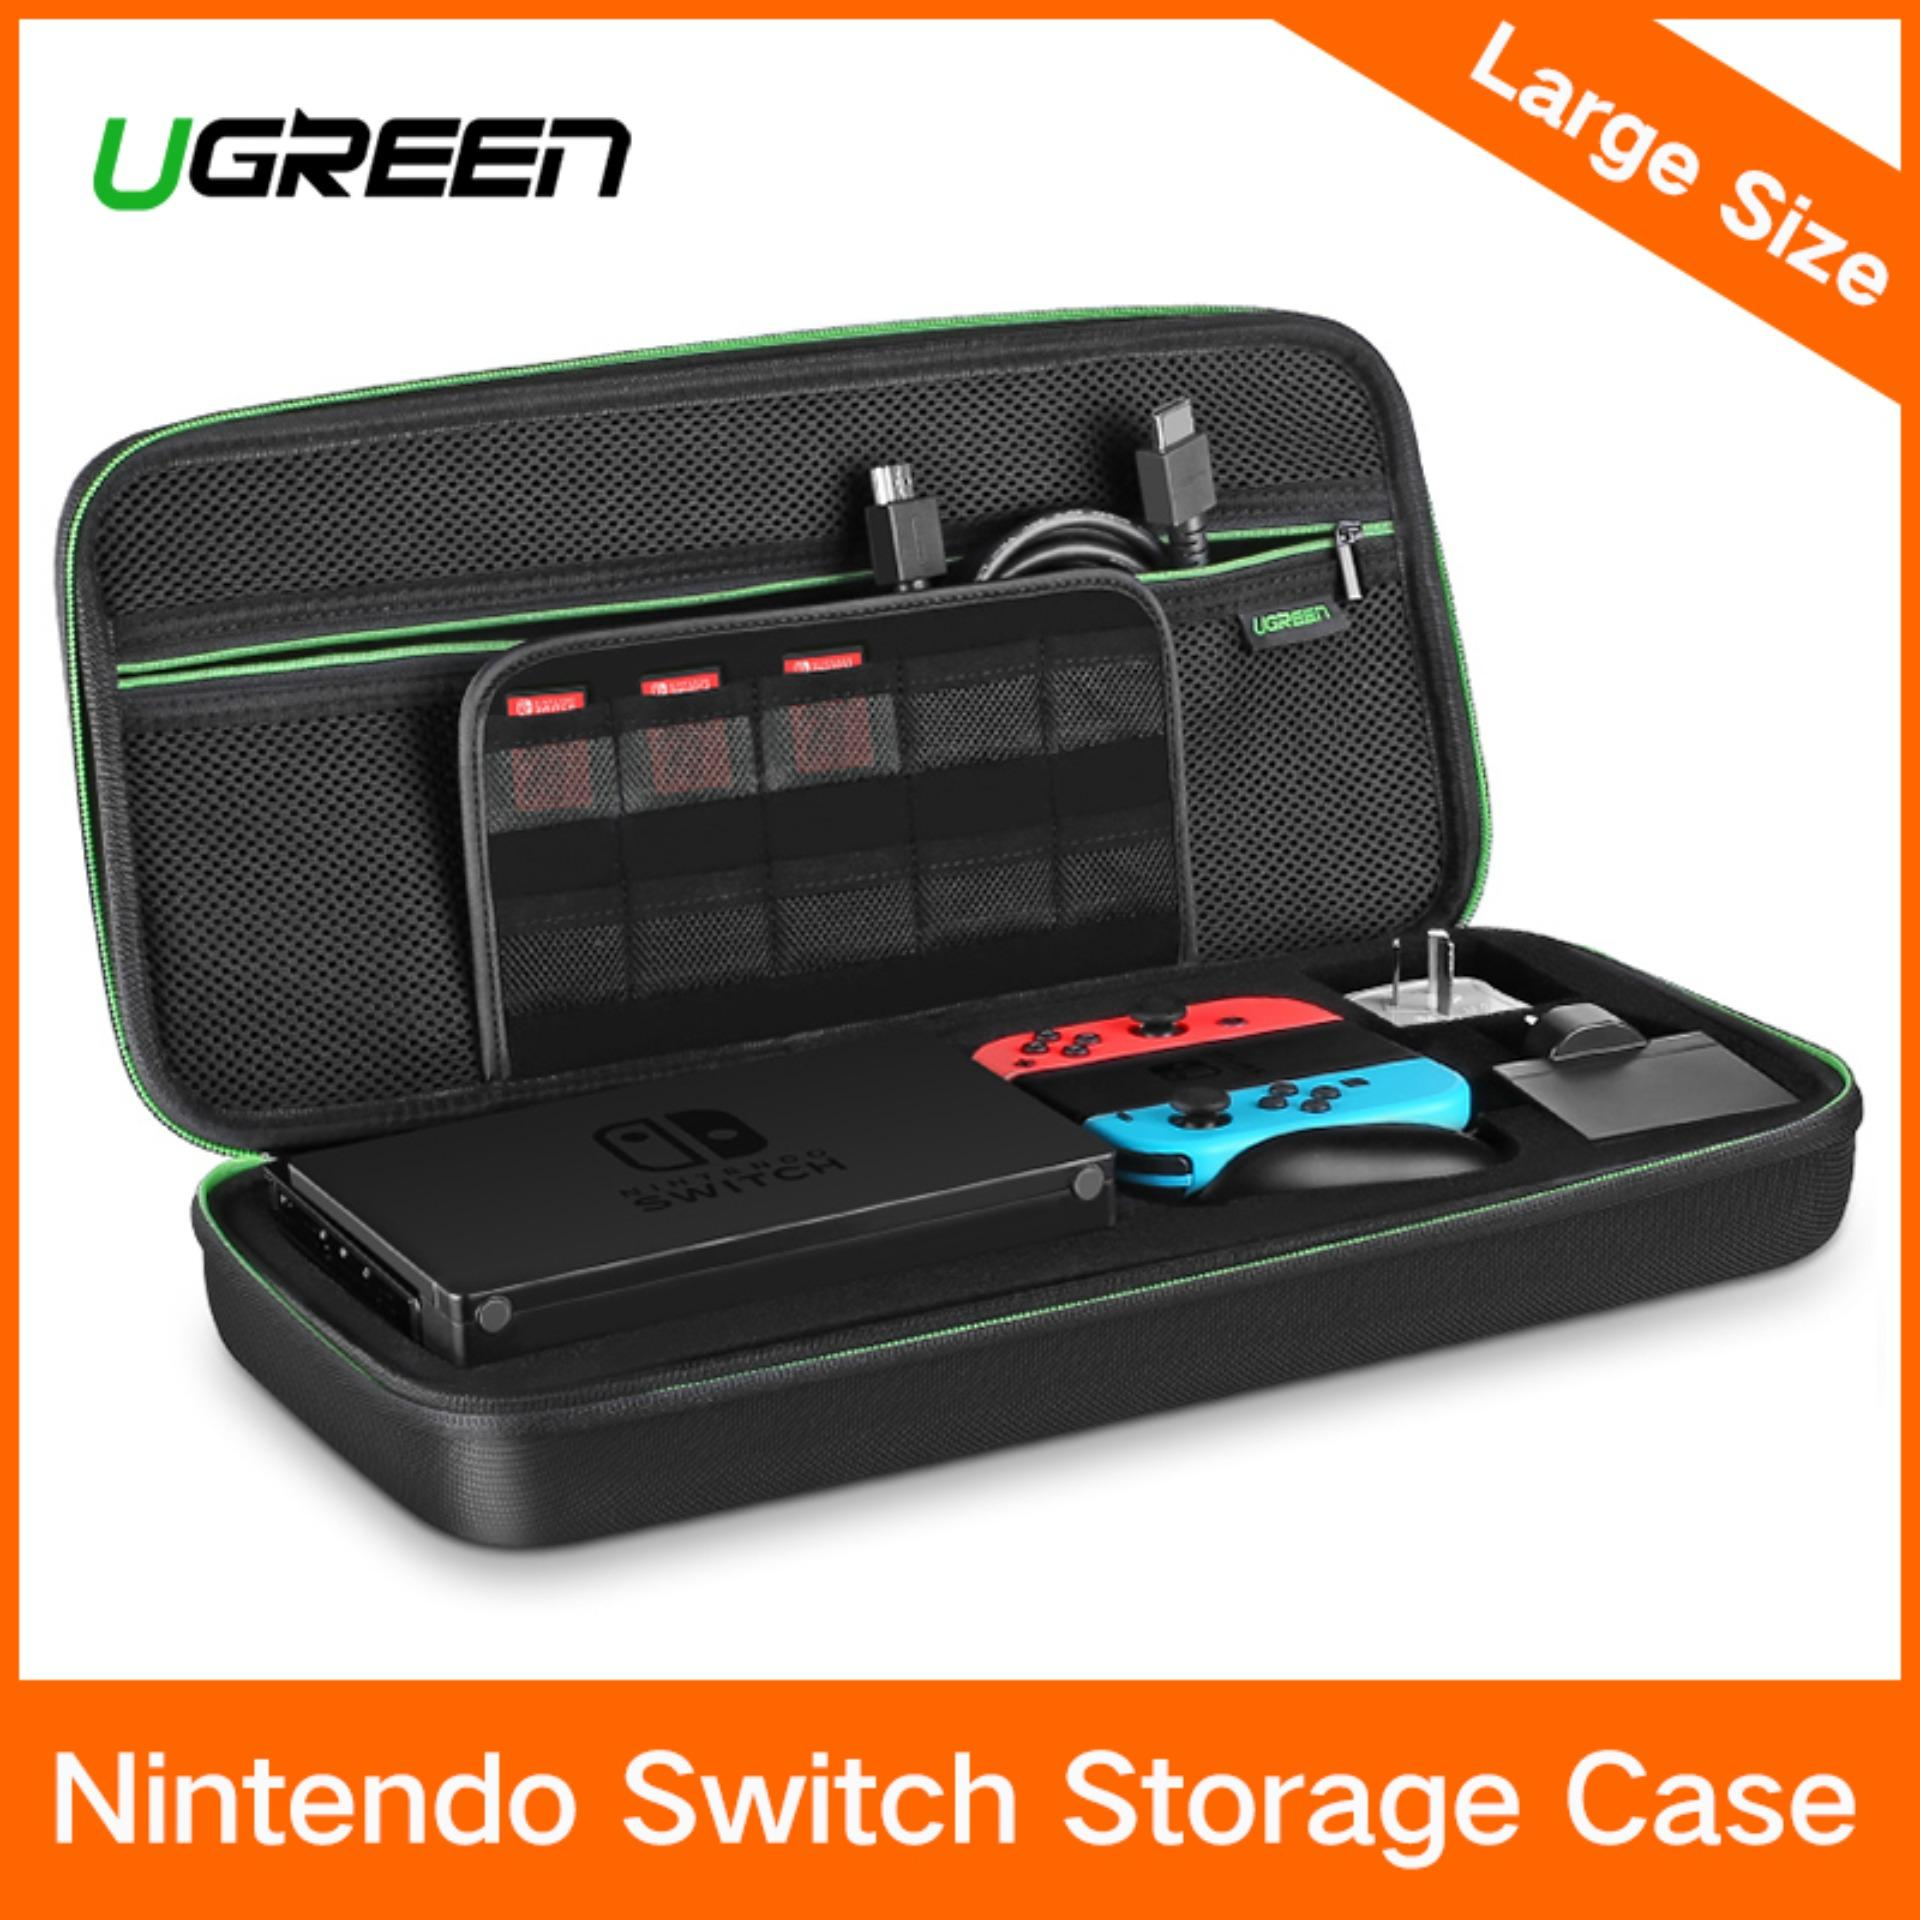 Ugreen Shockproof Case For Nintendo Switch Travel Carrying Case Bag Pouch With Carved Eva Liner, For Nintendo Switch Console, Ac Wall Charger, Grip And Joy-Con, 10 Games Cards, Strapes-Large Size - Intl By Ugreen Flagship Store.